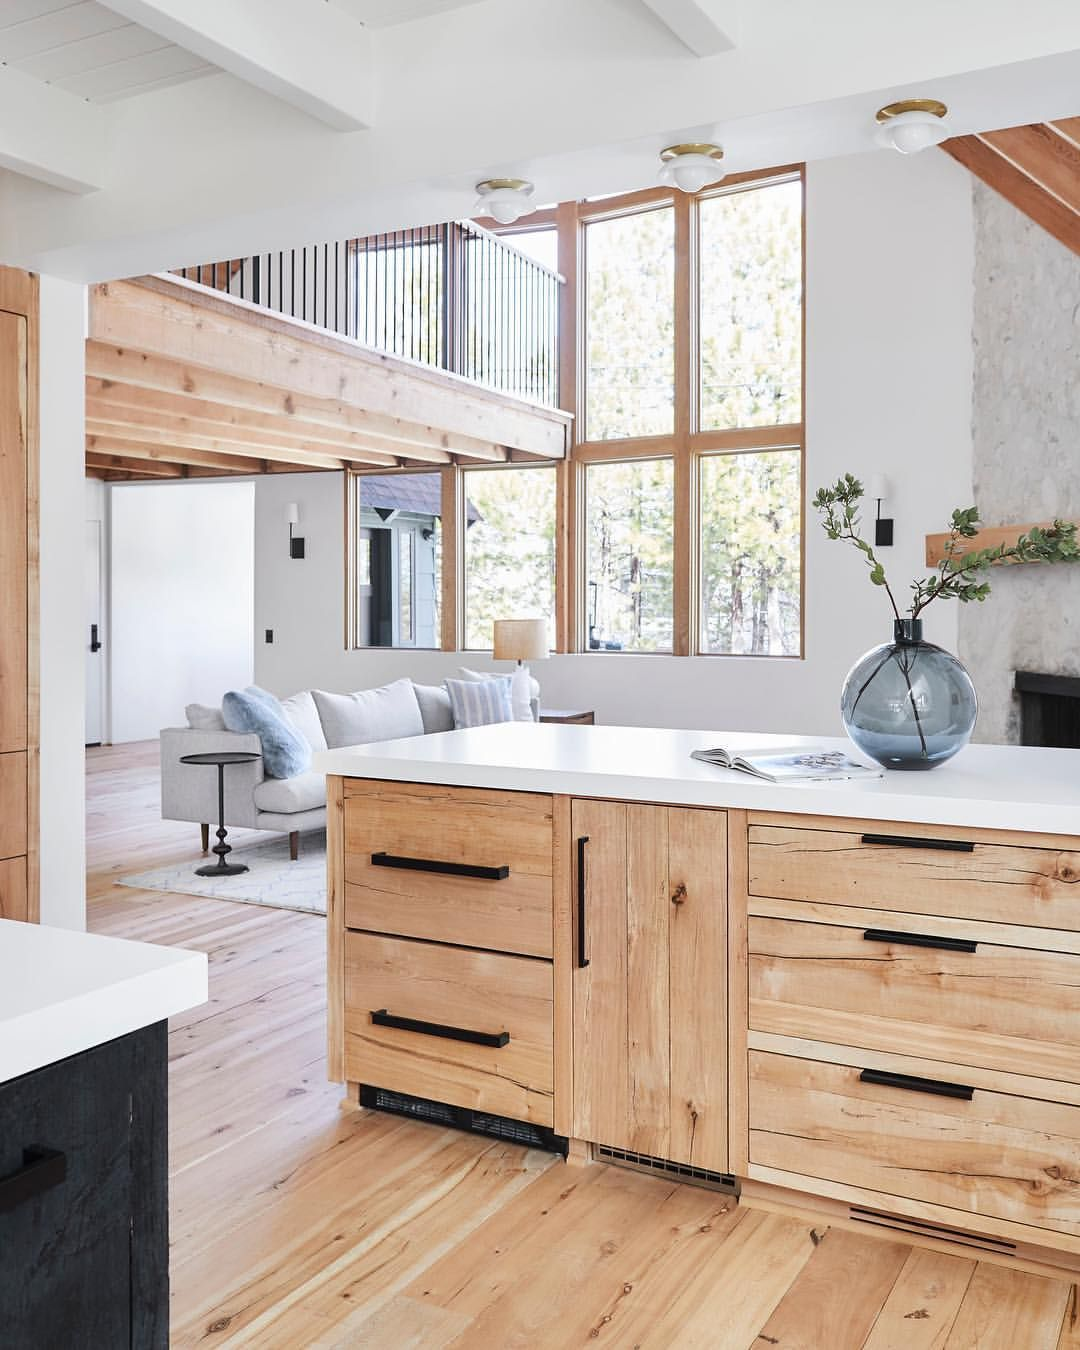 Stunning Mountain House Kitchen Renovation With Reclaimed Wood Cabinets Flooring Swipe Through The Photos Schoolhouse Home Kitchens Home Kitchen Renovation